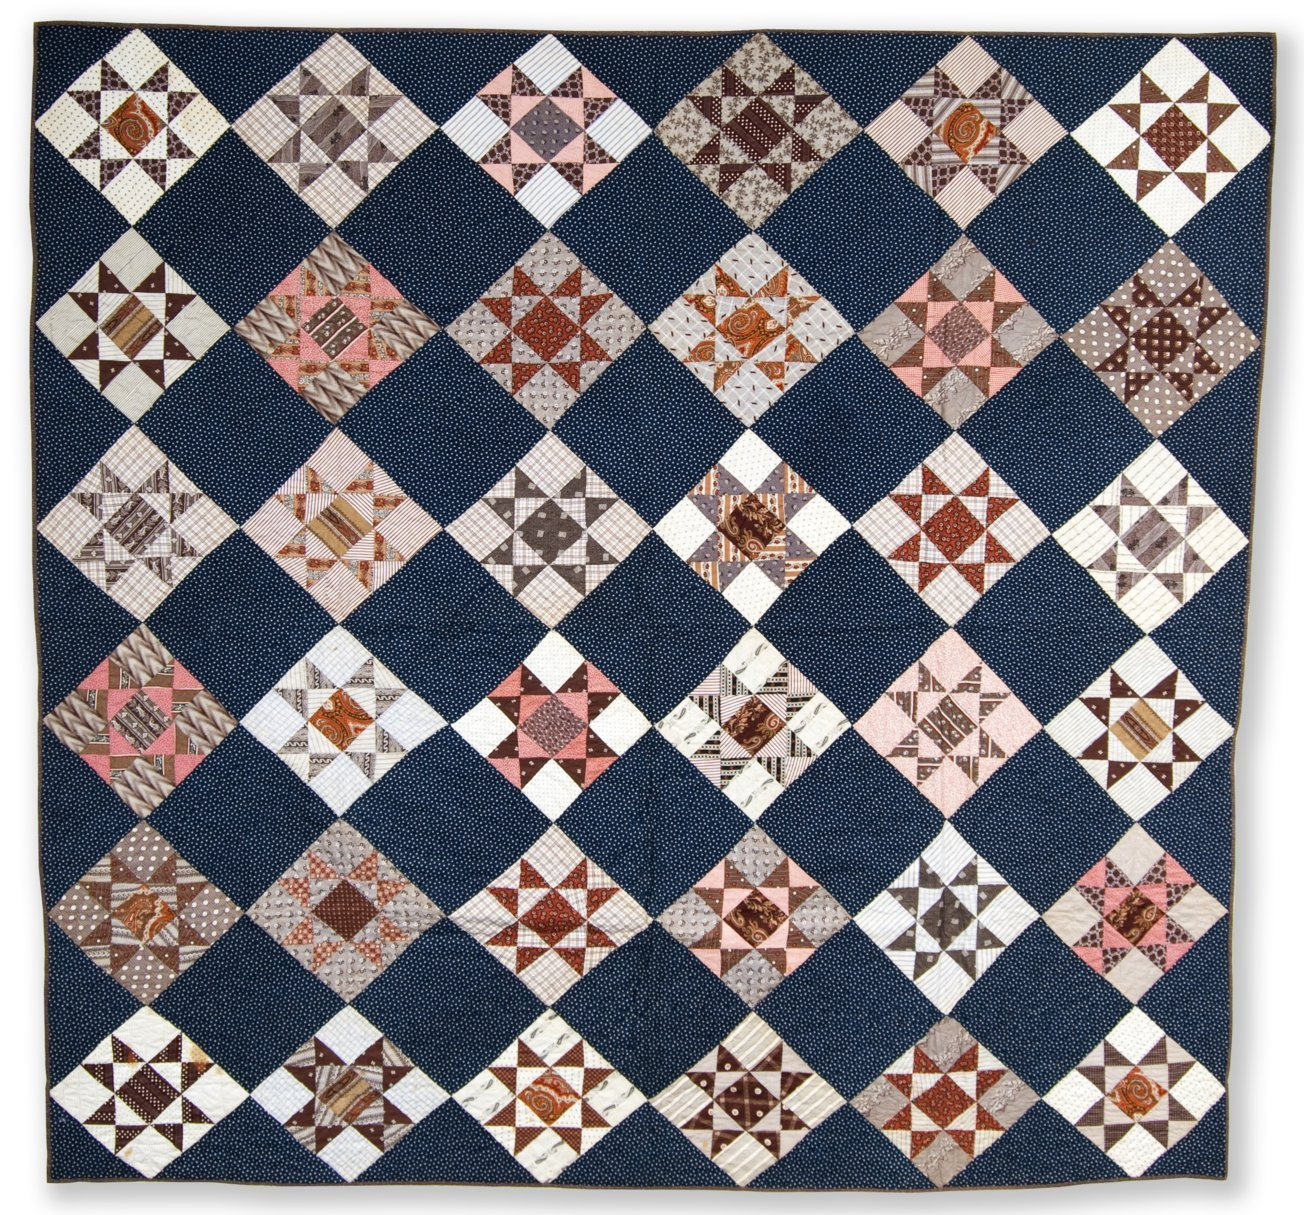 Star of Hope or Variable Star quilt